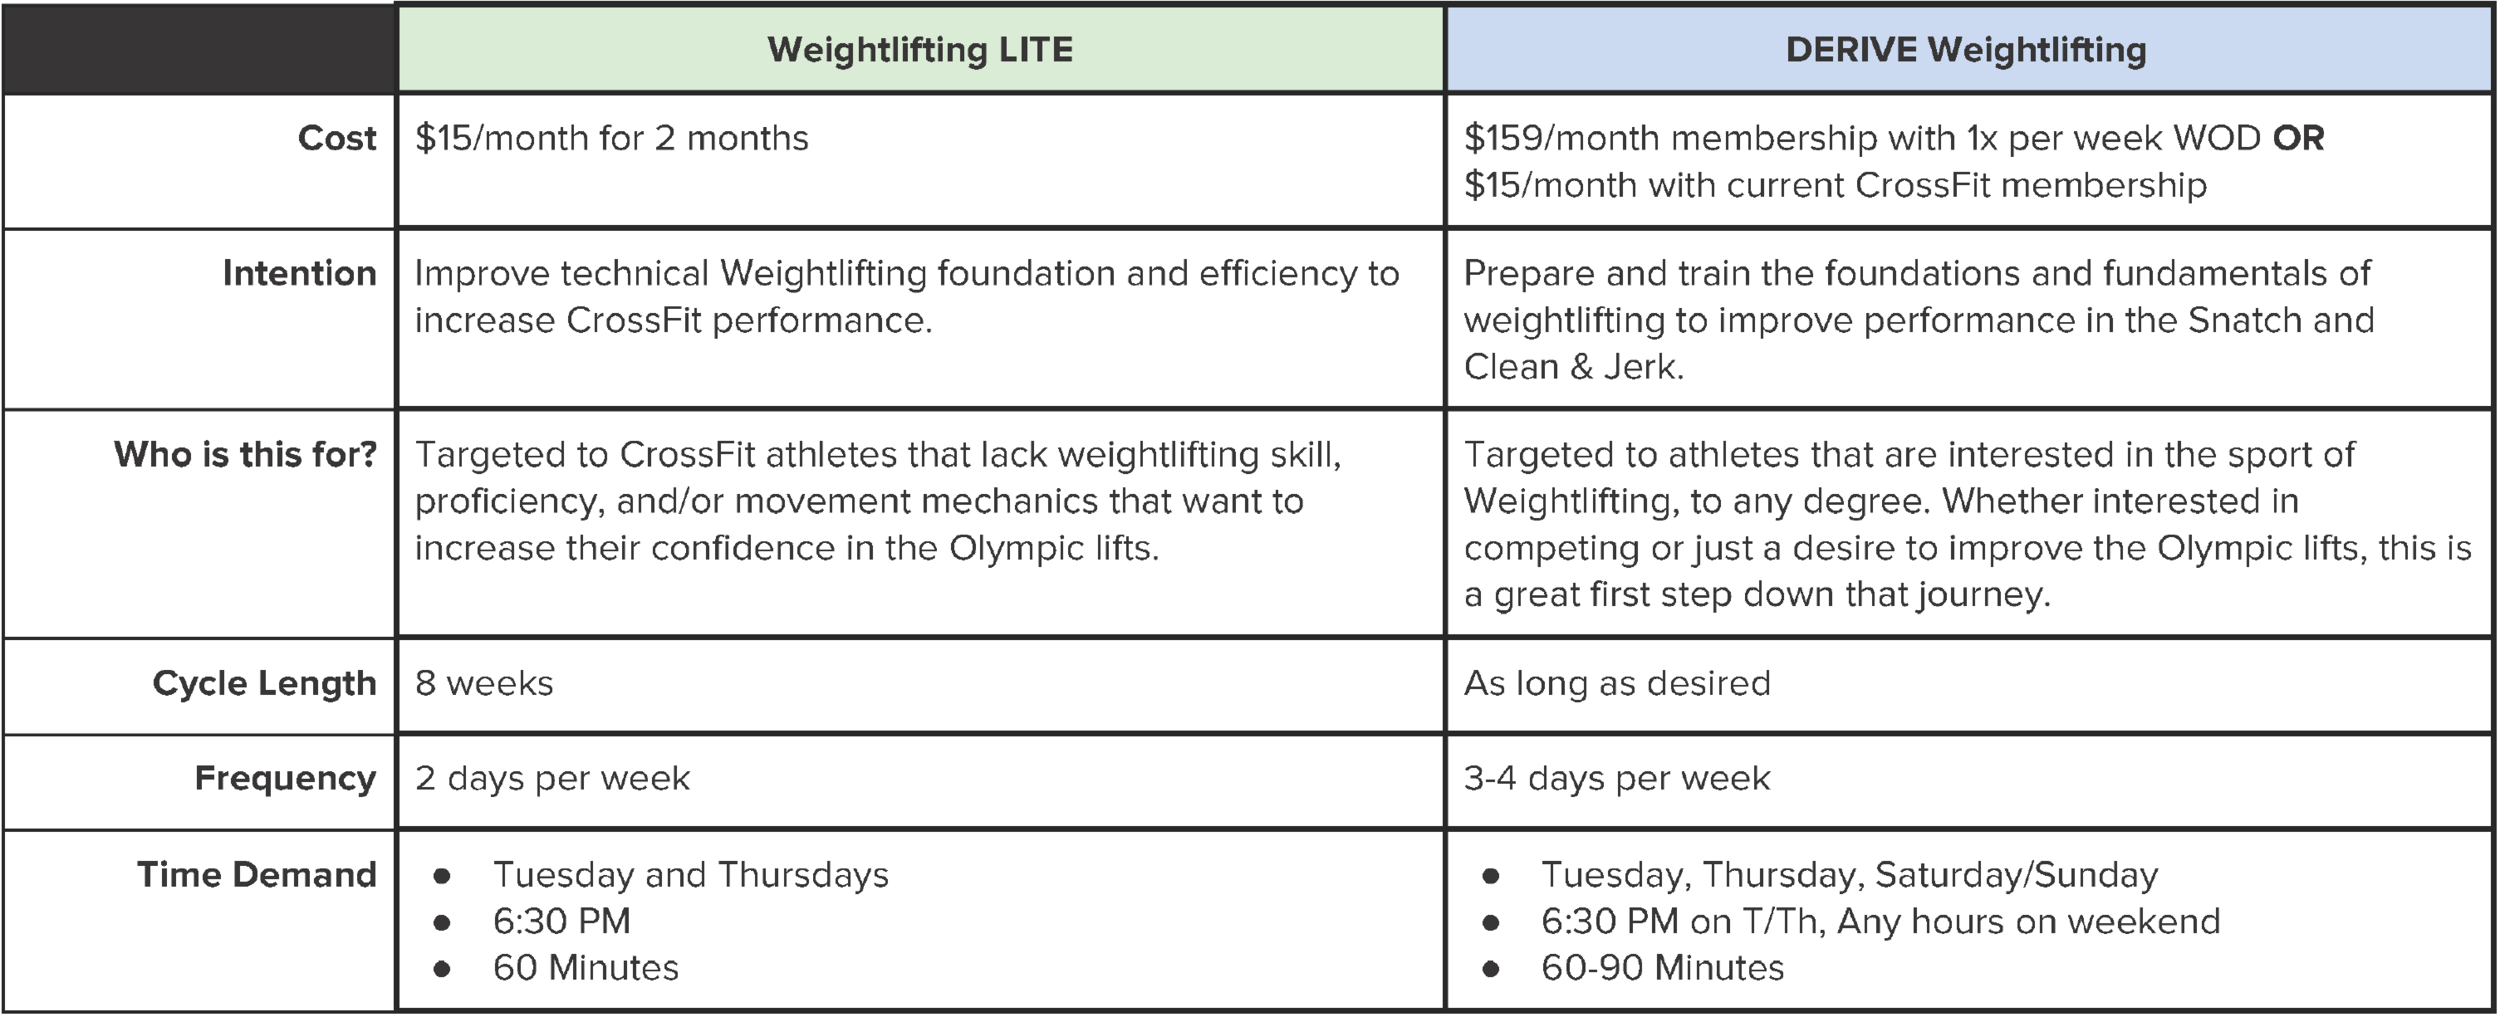 Weightlifting Lite + Weightlifting-01-01.png